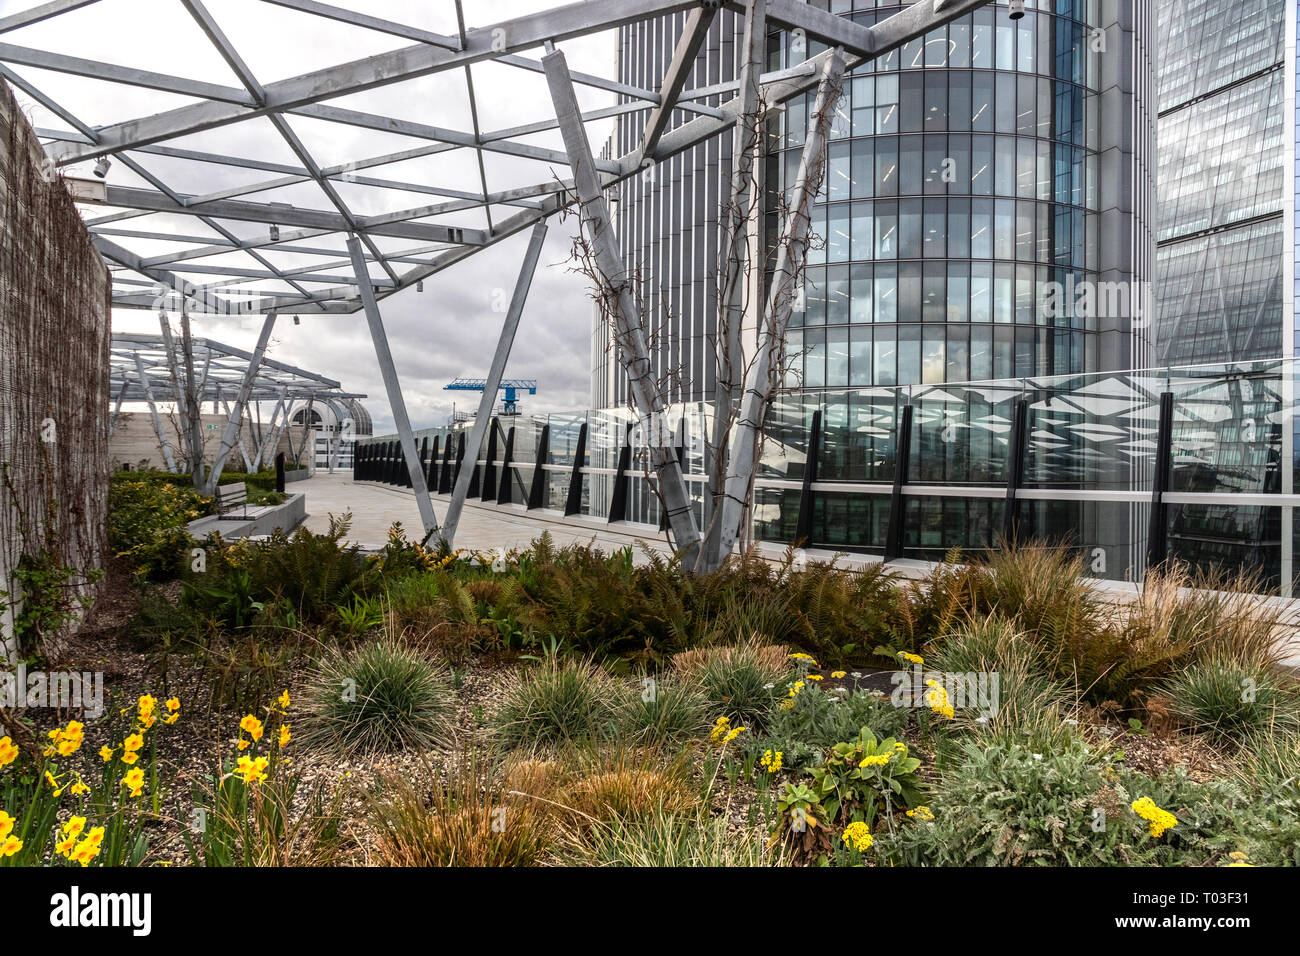 London Rooftop Garden Stock Photos & London Rooftop Garden ...